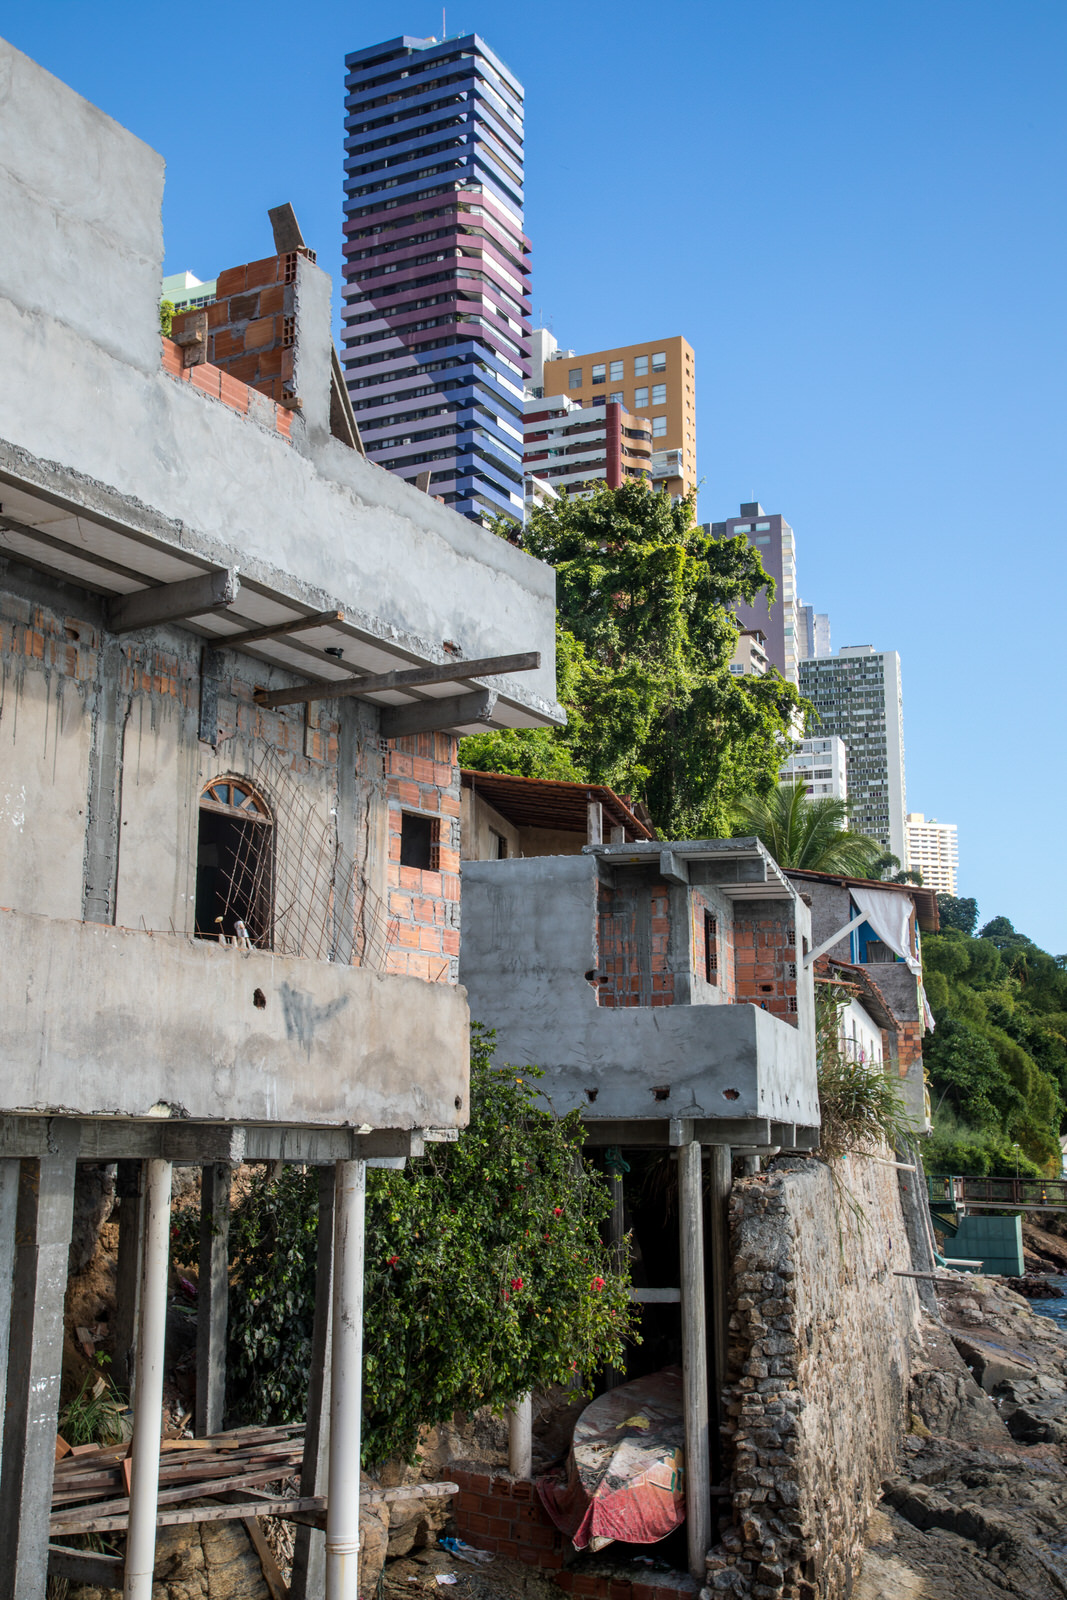 The Salvador coastline has undergone a series of urban development projects over the years. Urbanisation has been envisioned through 'modernisation' projects.  Gamboa de Baixo is one of a number of vulnerable coastal communities facing challenges as a consequence of urban development.